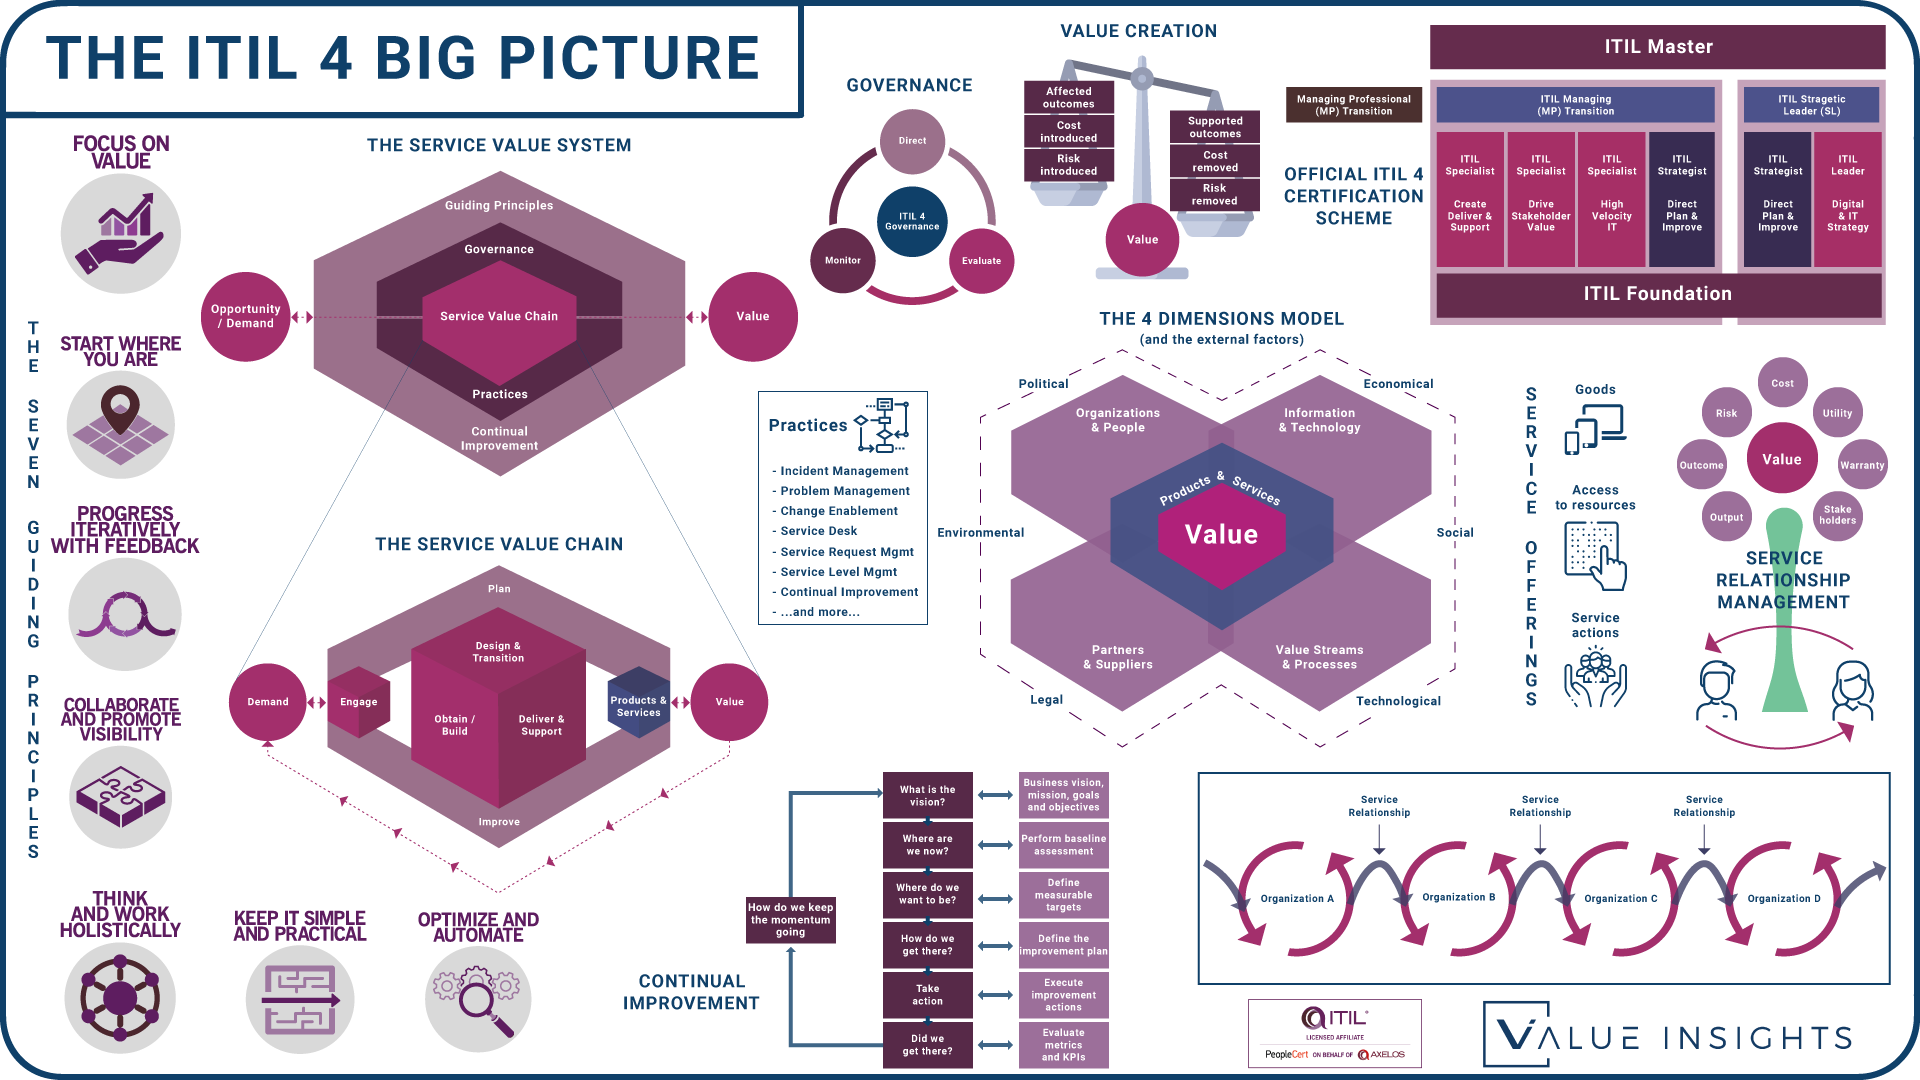 itil 4 big picture overview foundation create deliver support drive stakeholder value high velocity it direct plan and improve digital it strategy managing professional transition service management itsm badge png logo axelos peoplecert value insights